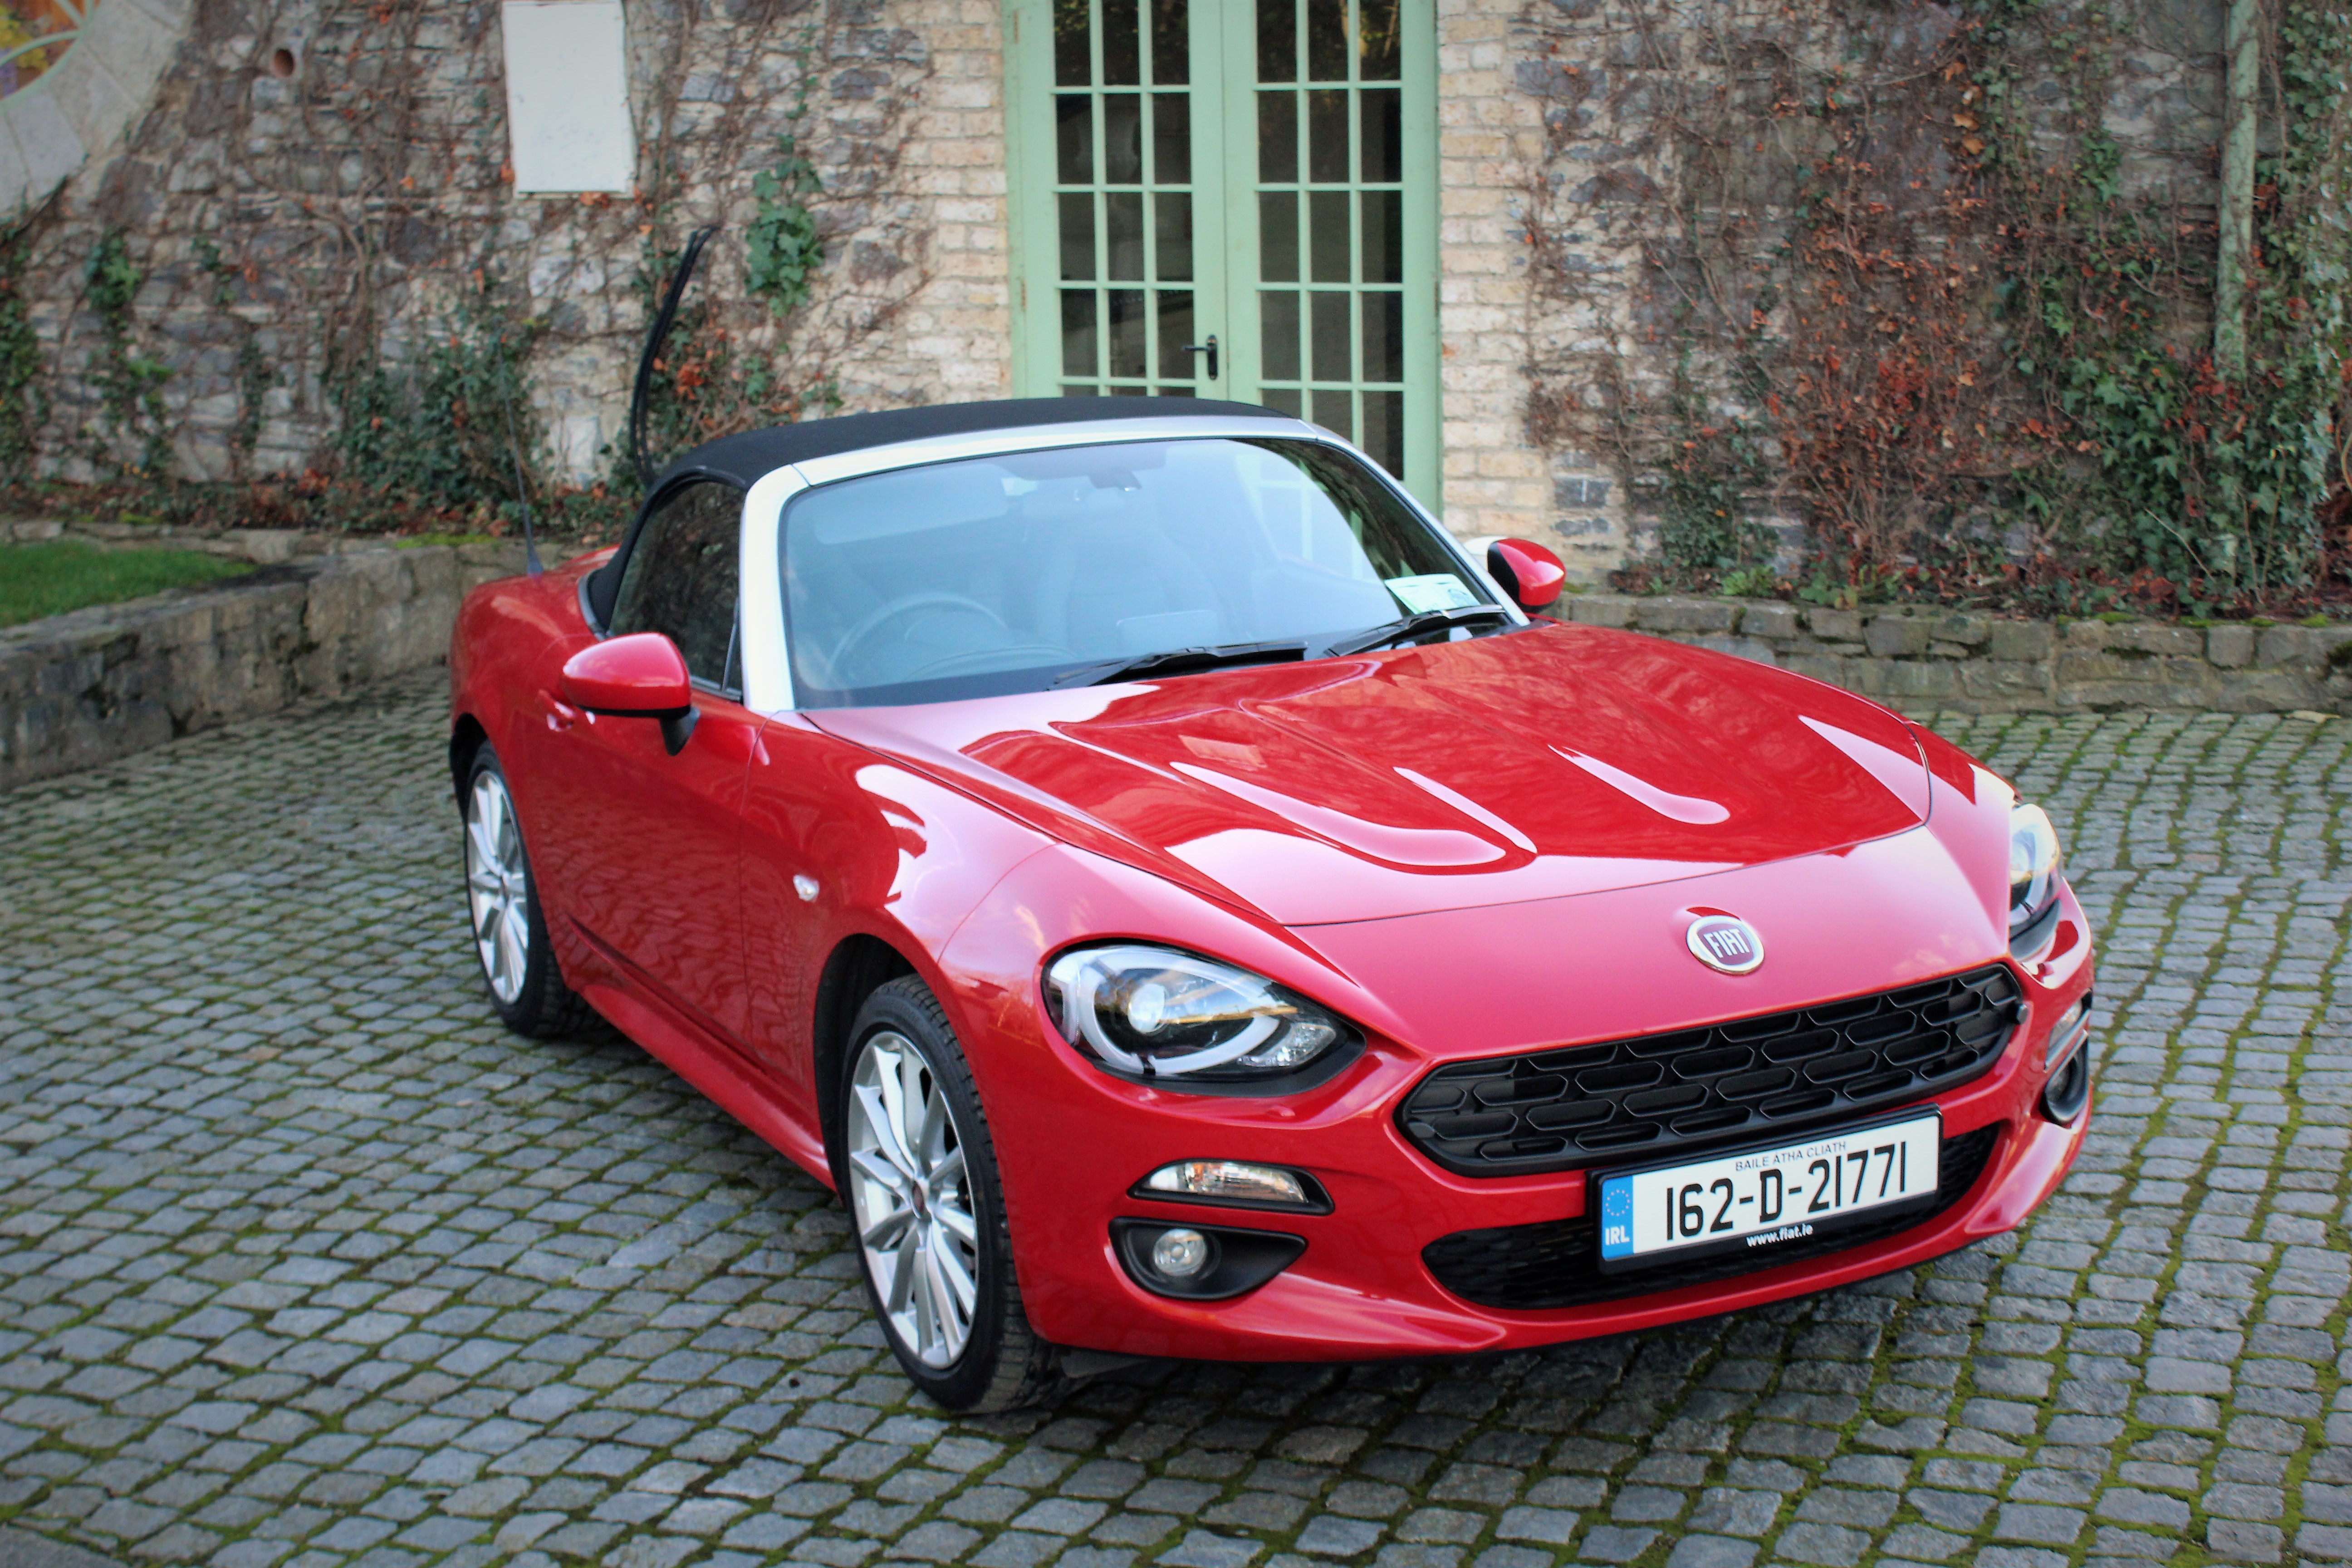 Fiat 124 Spider Rear Axle Schematic The All New Marks Return Of Brand To Playground Where Mazda Mx 5 Has Enjoyed Almost Unrivalled Control For Many Years